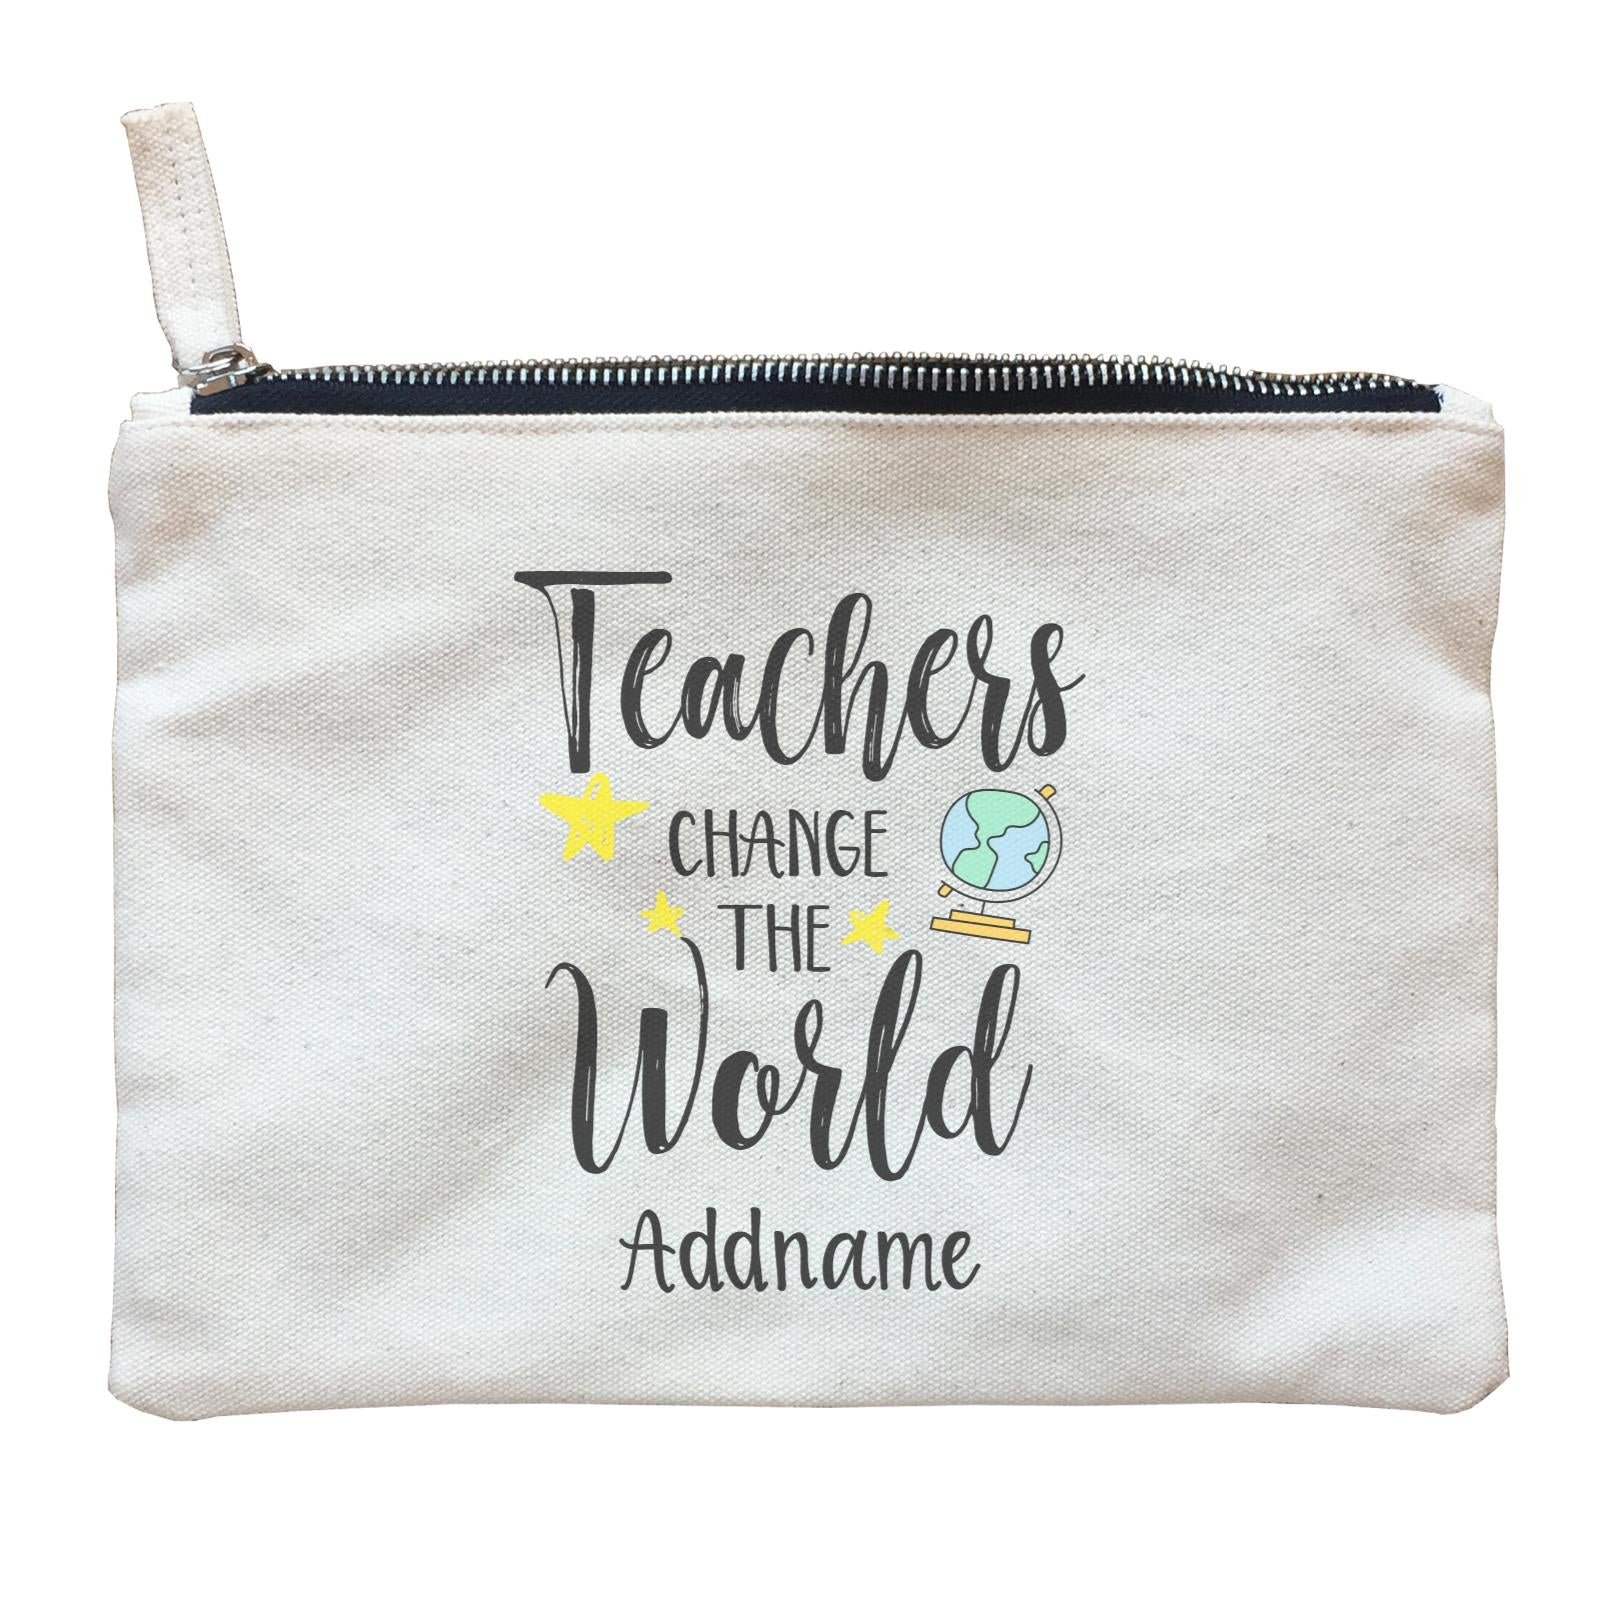 Teacher Quotes Teachers Change The World Addname Zipper Pouch